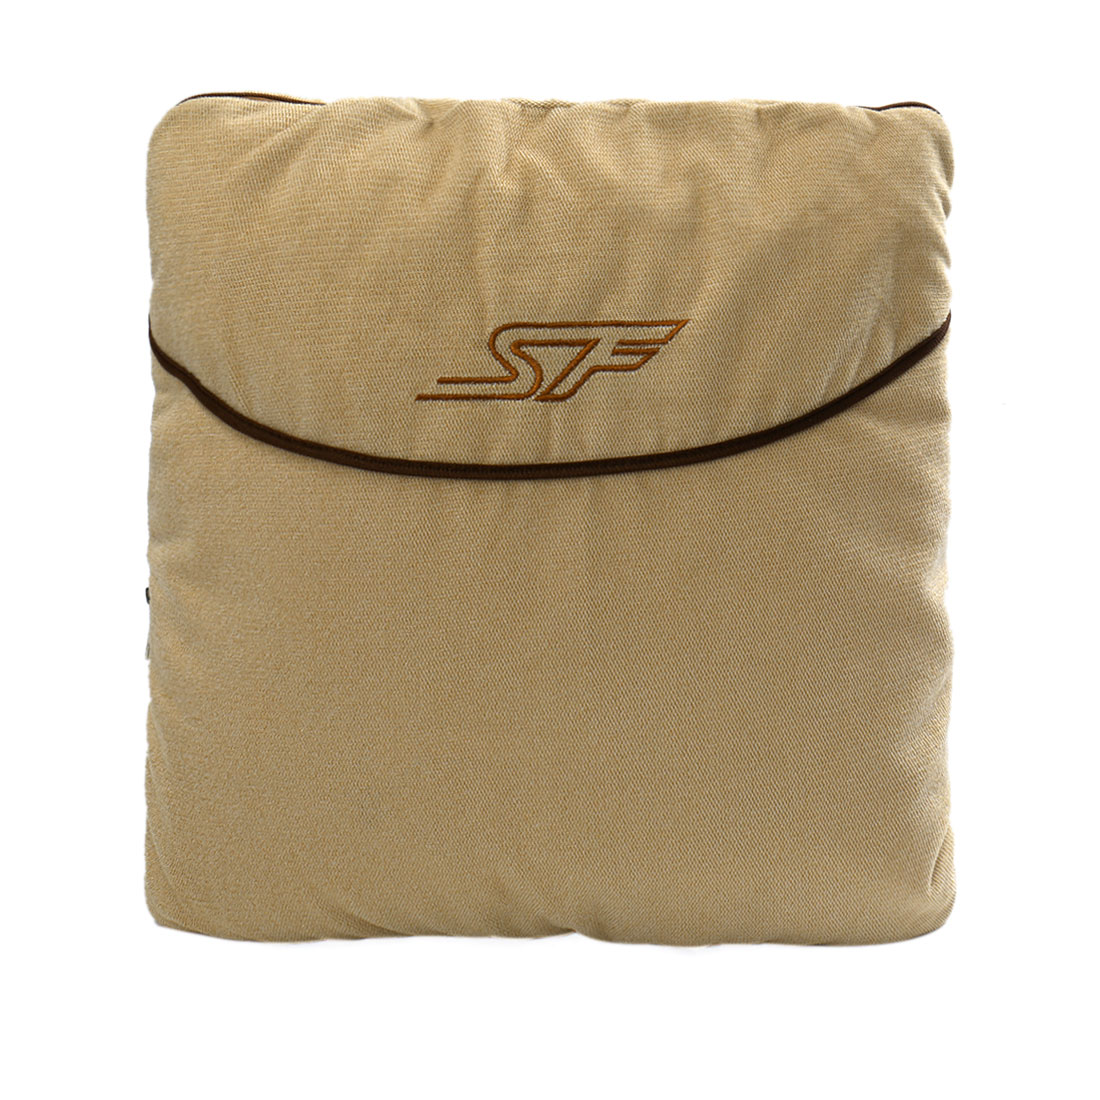 Automobile Car SF Pattern Interior Khaki Soft Fleece Zipper Closure Warmer Blanket 150cm x 120cm